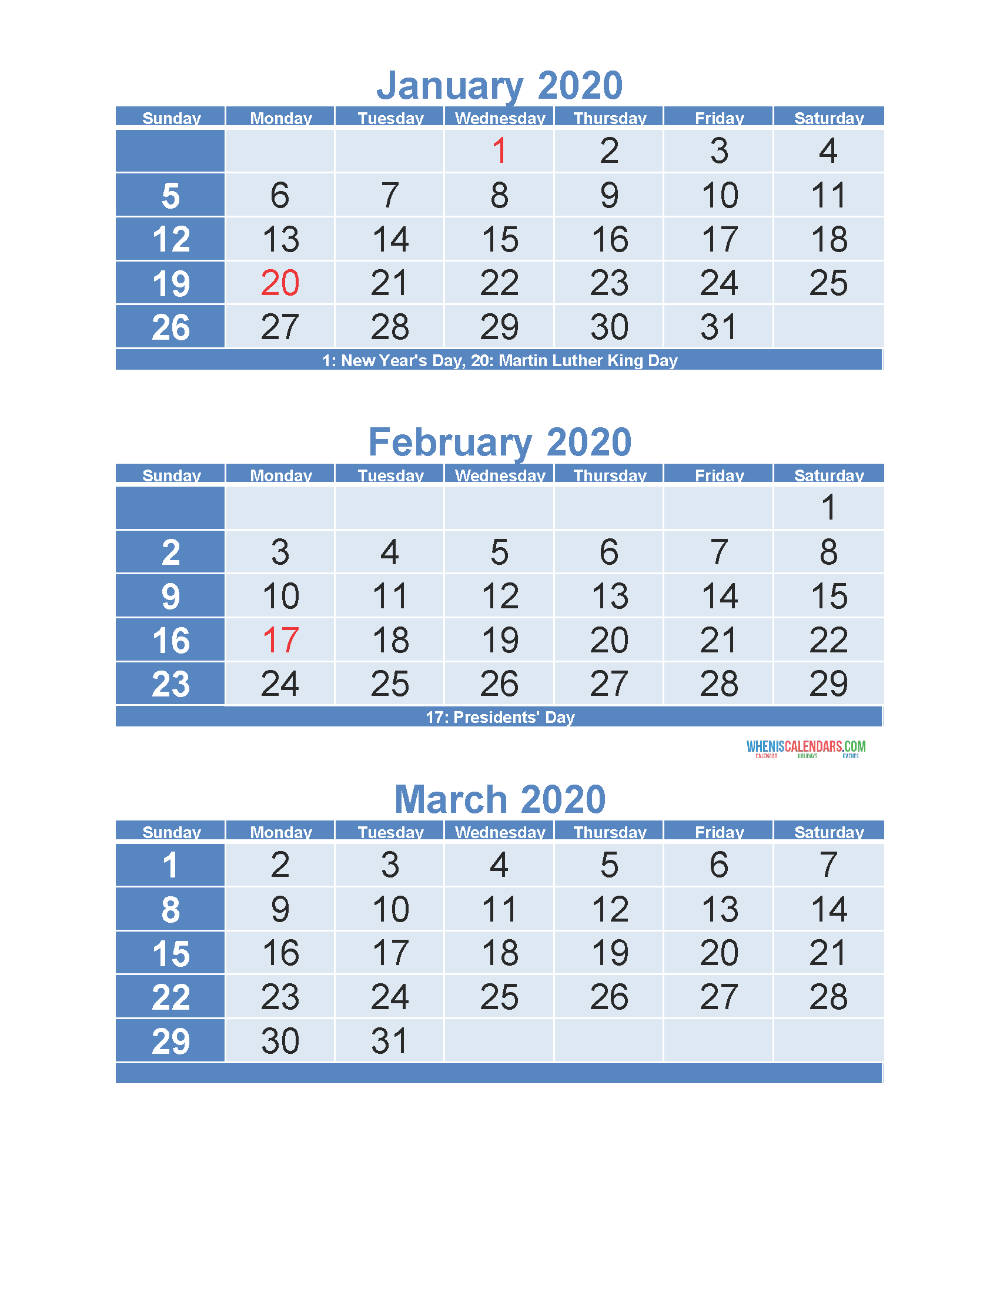 3 Month Calendar 2020 Printable January February March Free Printable 2020 Calendar Templates Calendar Template Calendar 2020 January February March